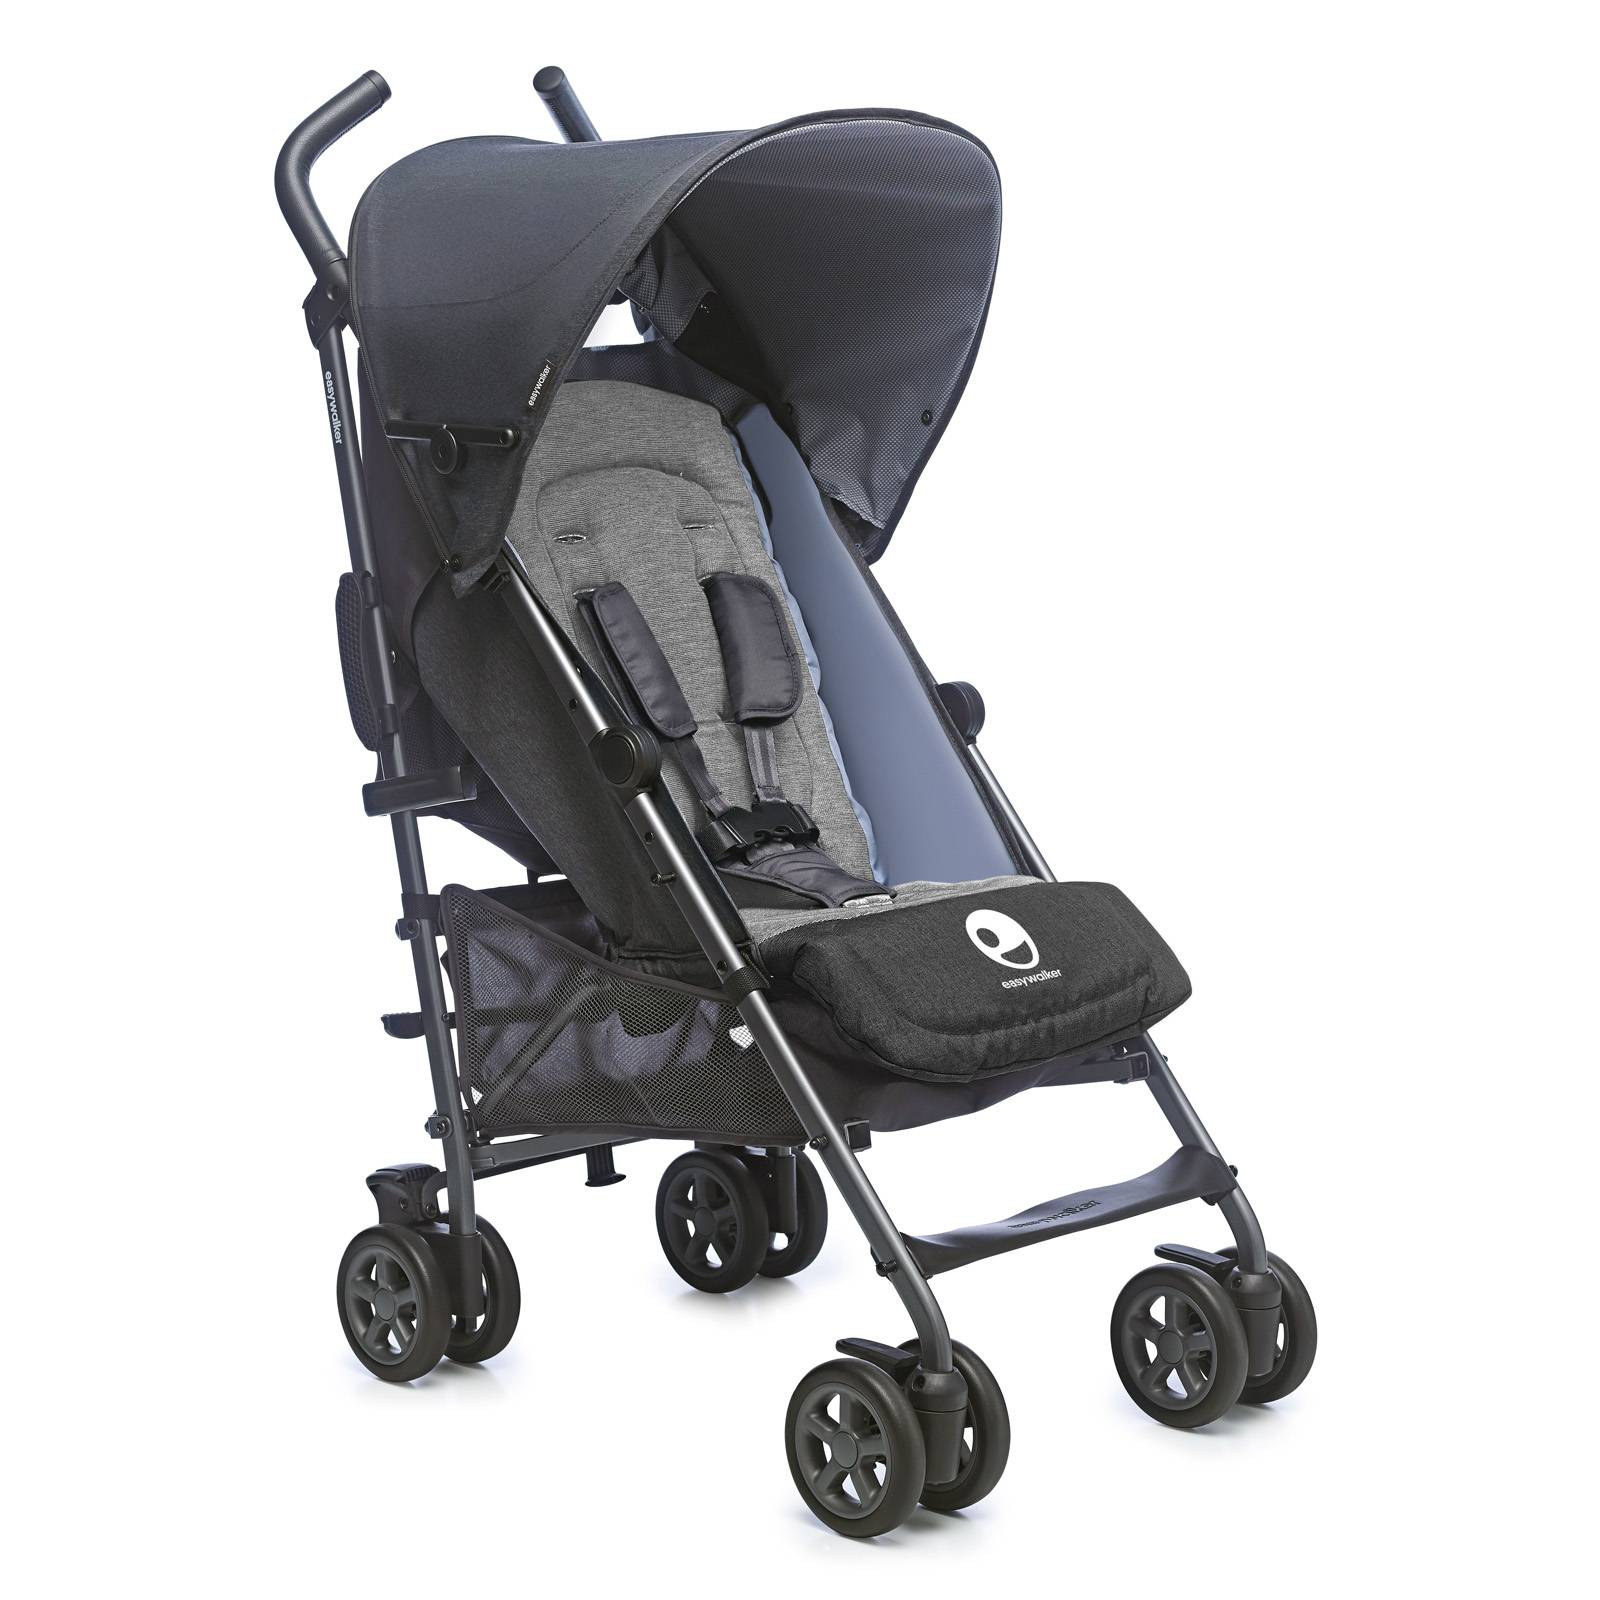 Easywalker Pushchair Buggy with Raincover - Berlin Breakfast